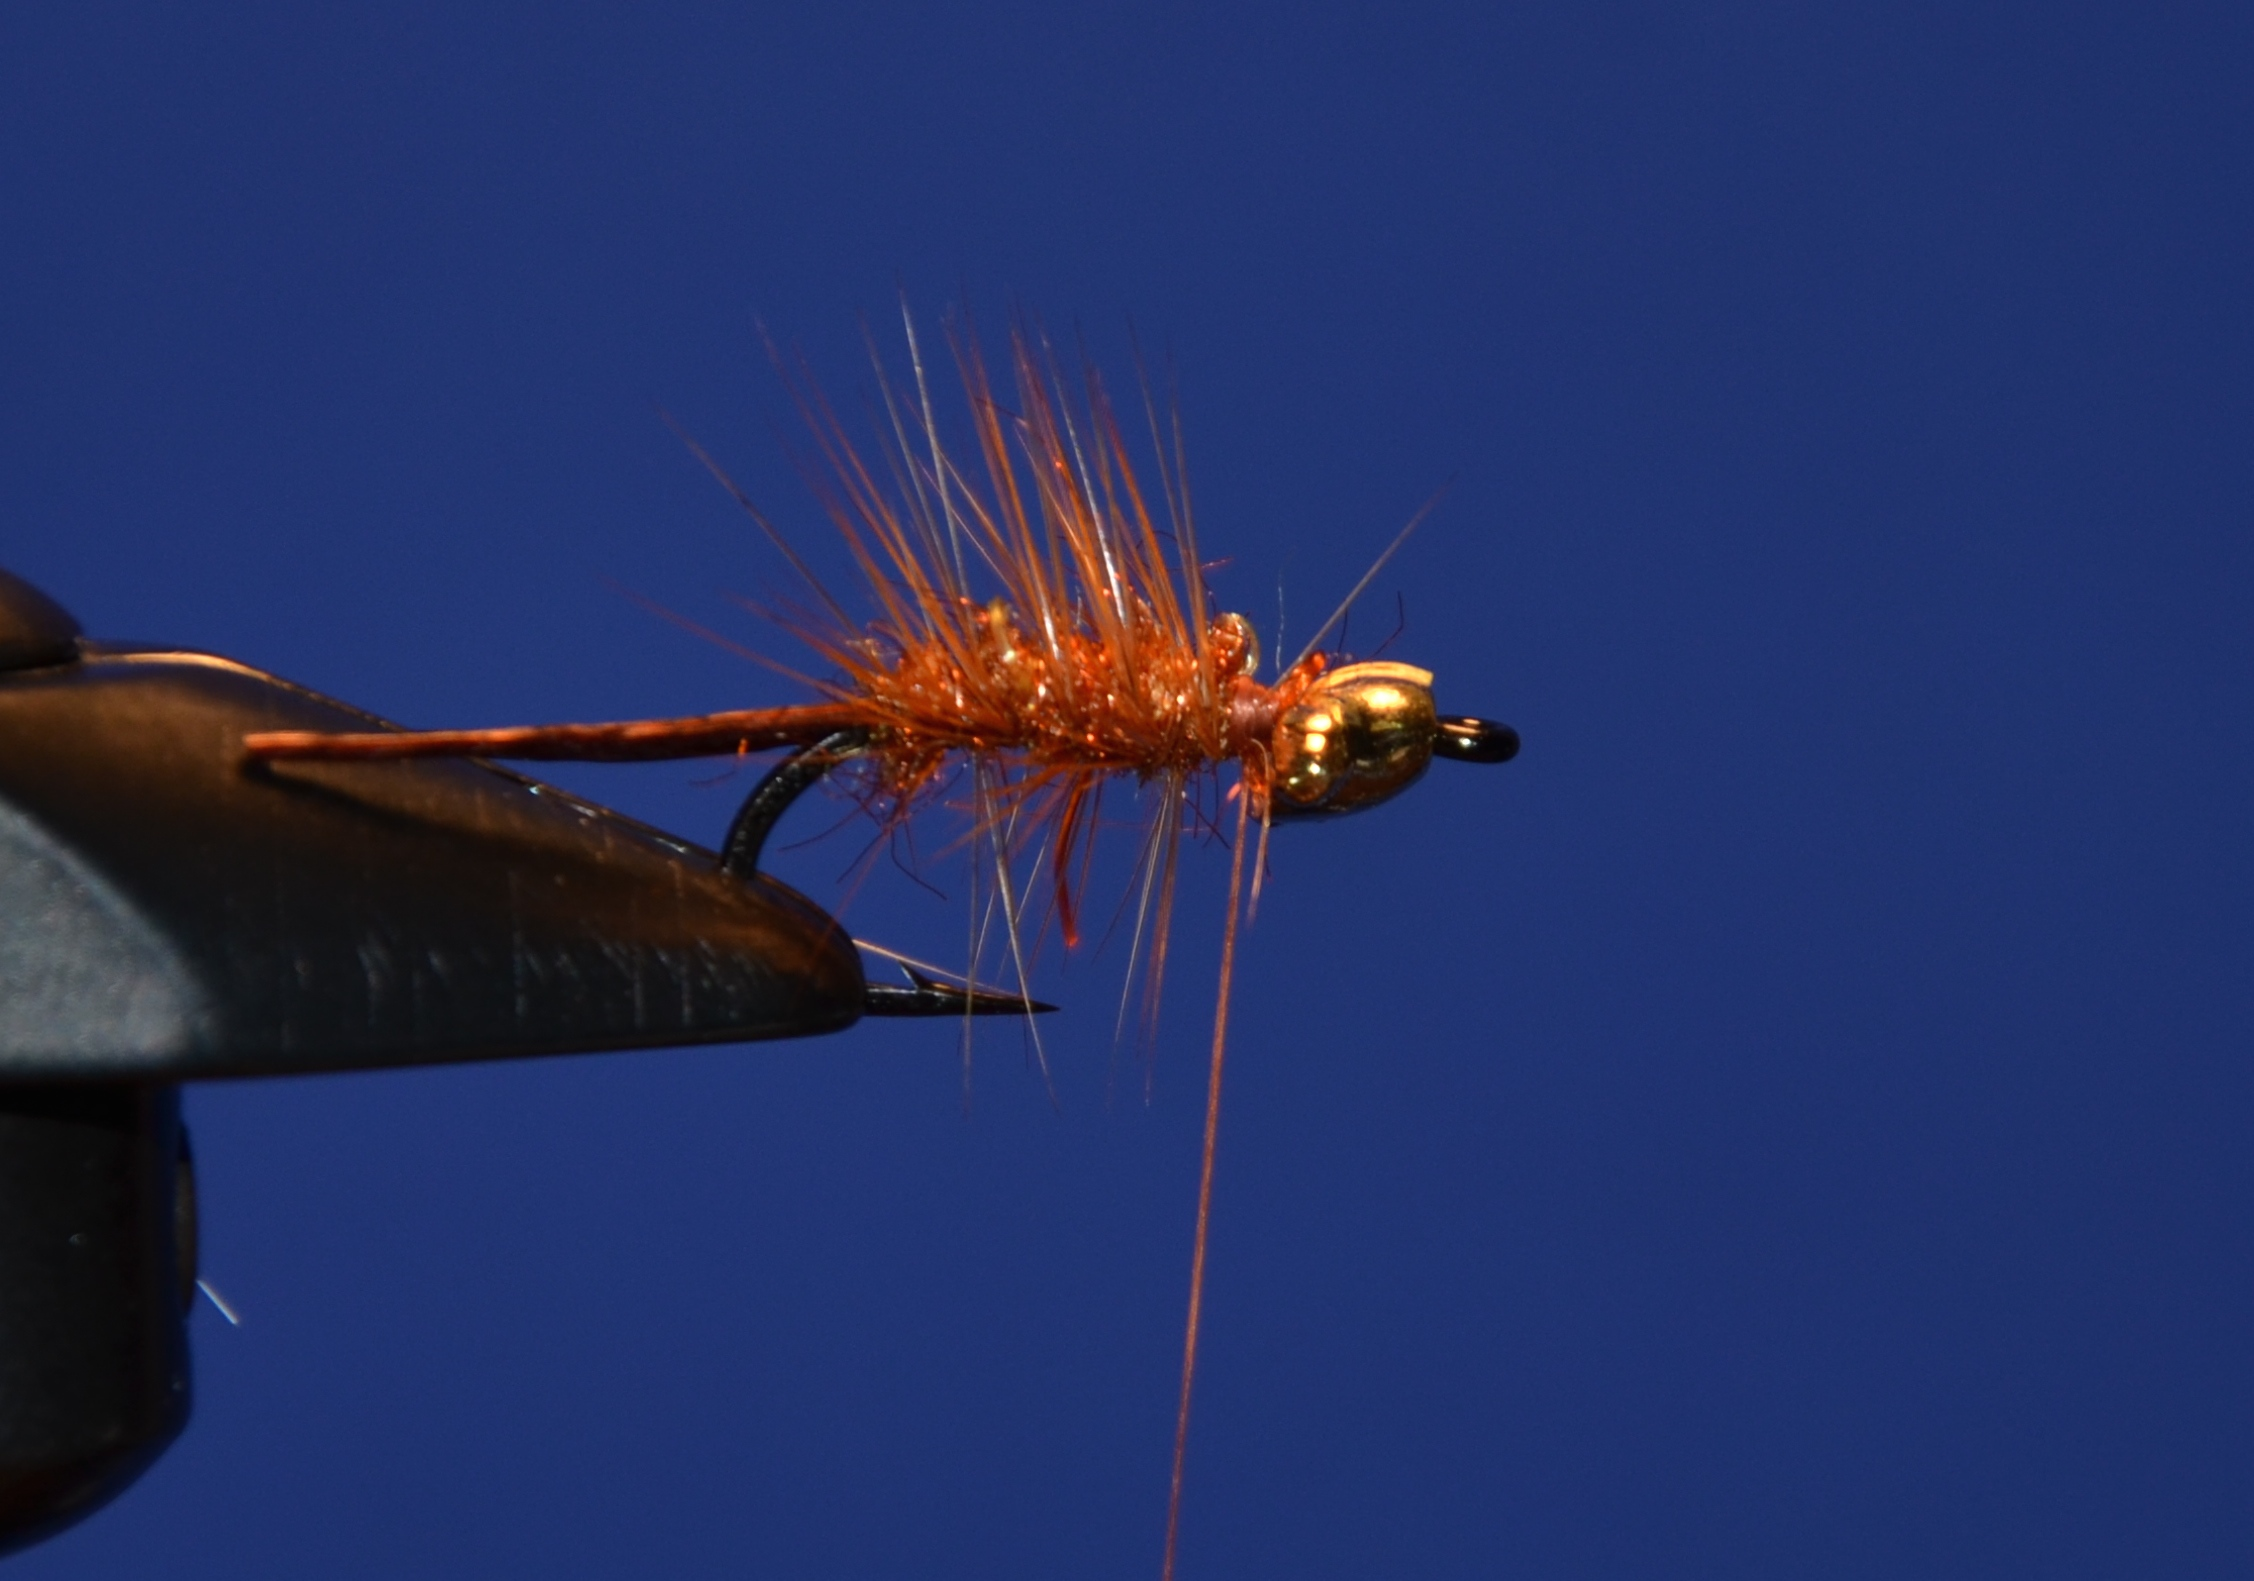 Tie in hackle and wrap back, then work the wire back through to the front of the body. Same as you would for a wooly bugger.